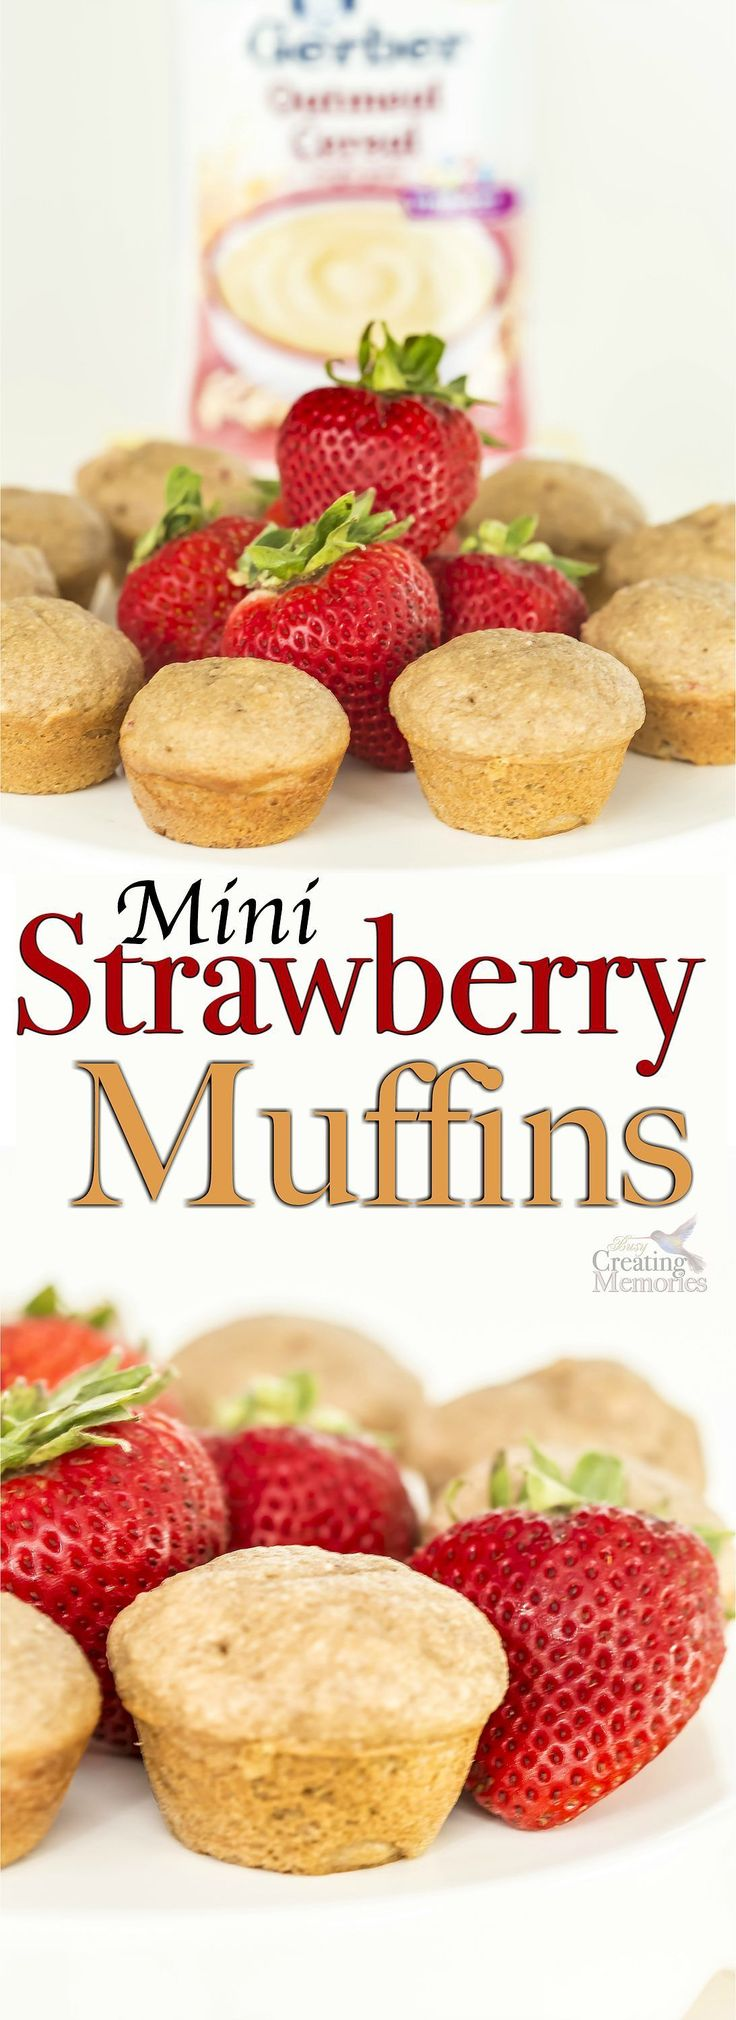 Discover the secret to extra moist Mini Strawberry Muffins! These mini muffins are perfectly proportioned to be kid friendly finger foods for easy snacking.  And how to have extra moist muffins by using a secret ingredient, left-over Gerber baby Food! ‪#‎CookingWithGerber‬ (AD)